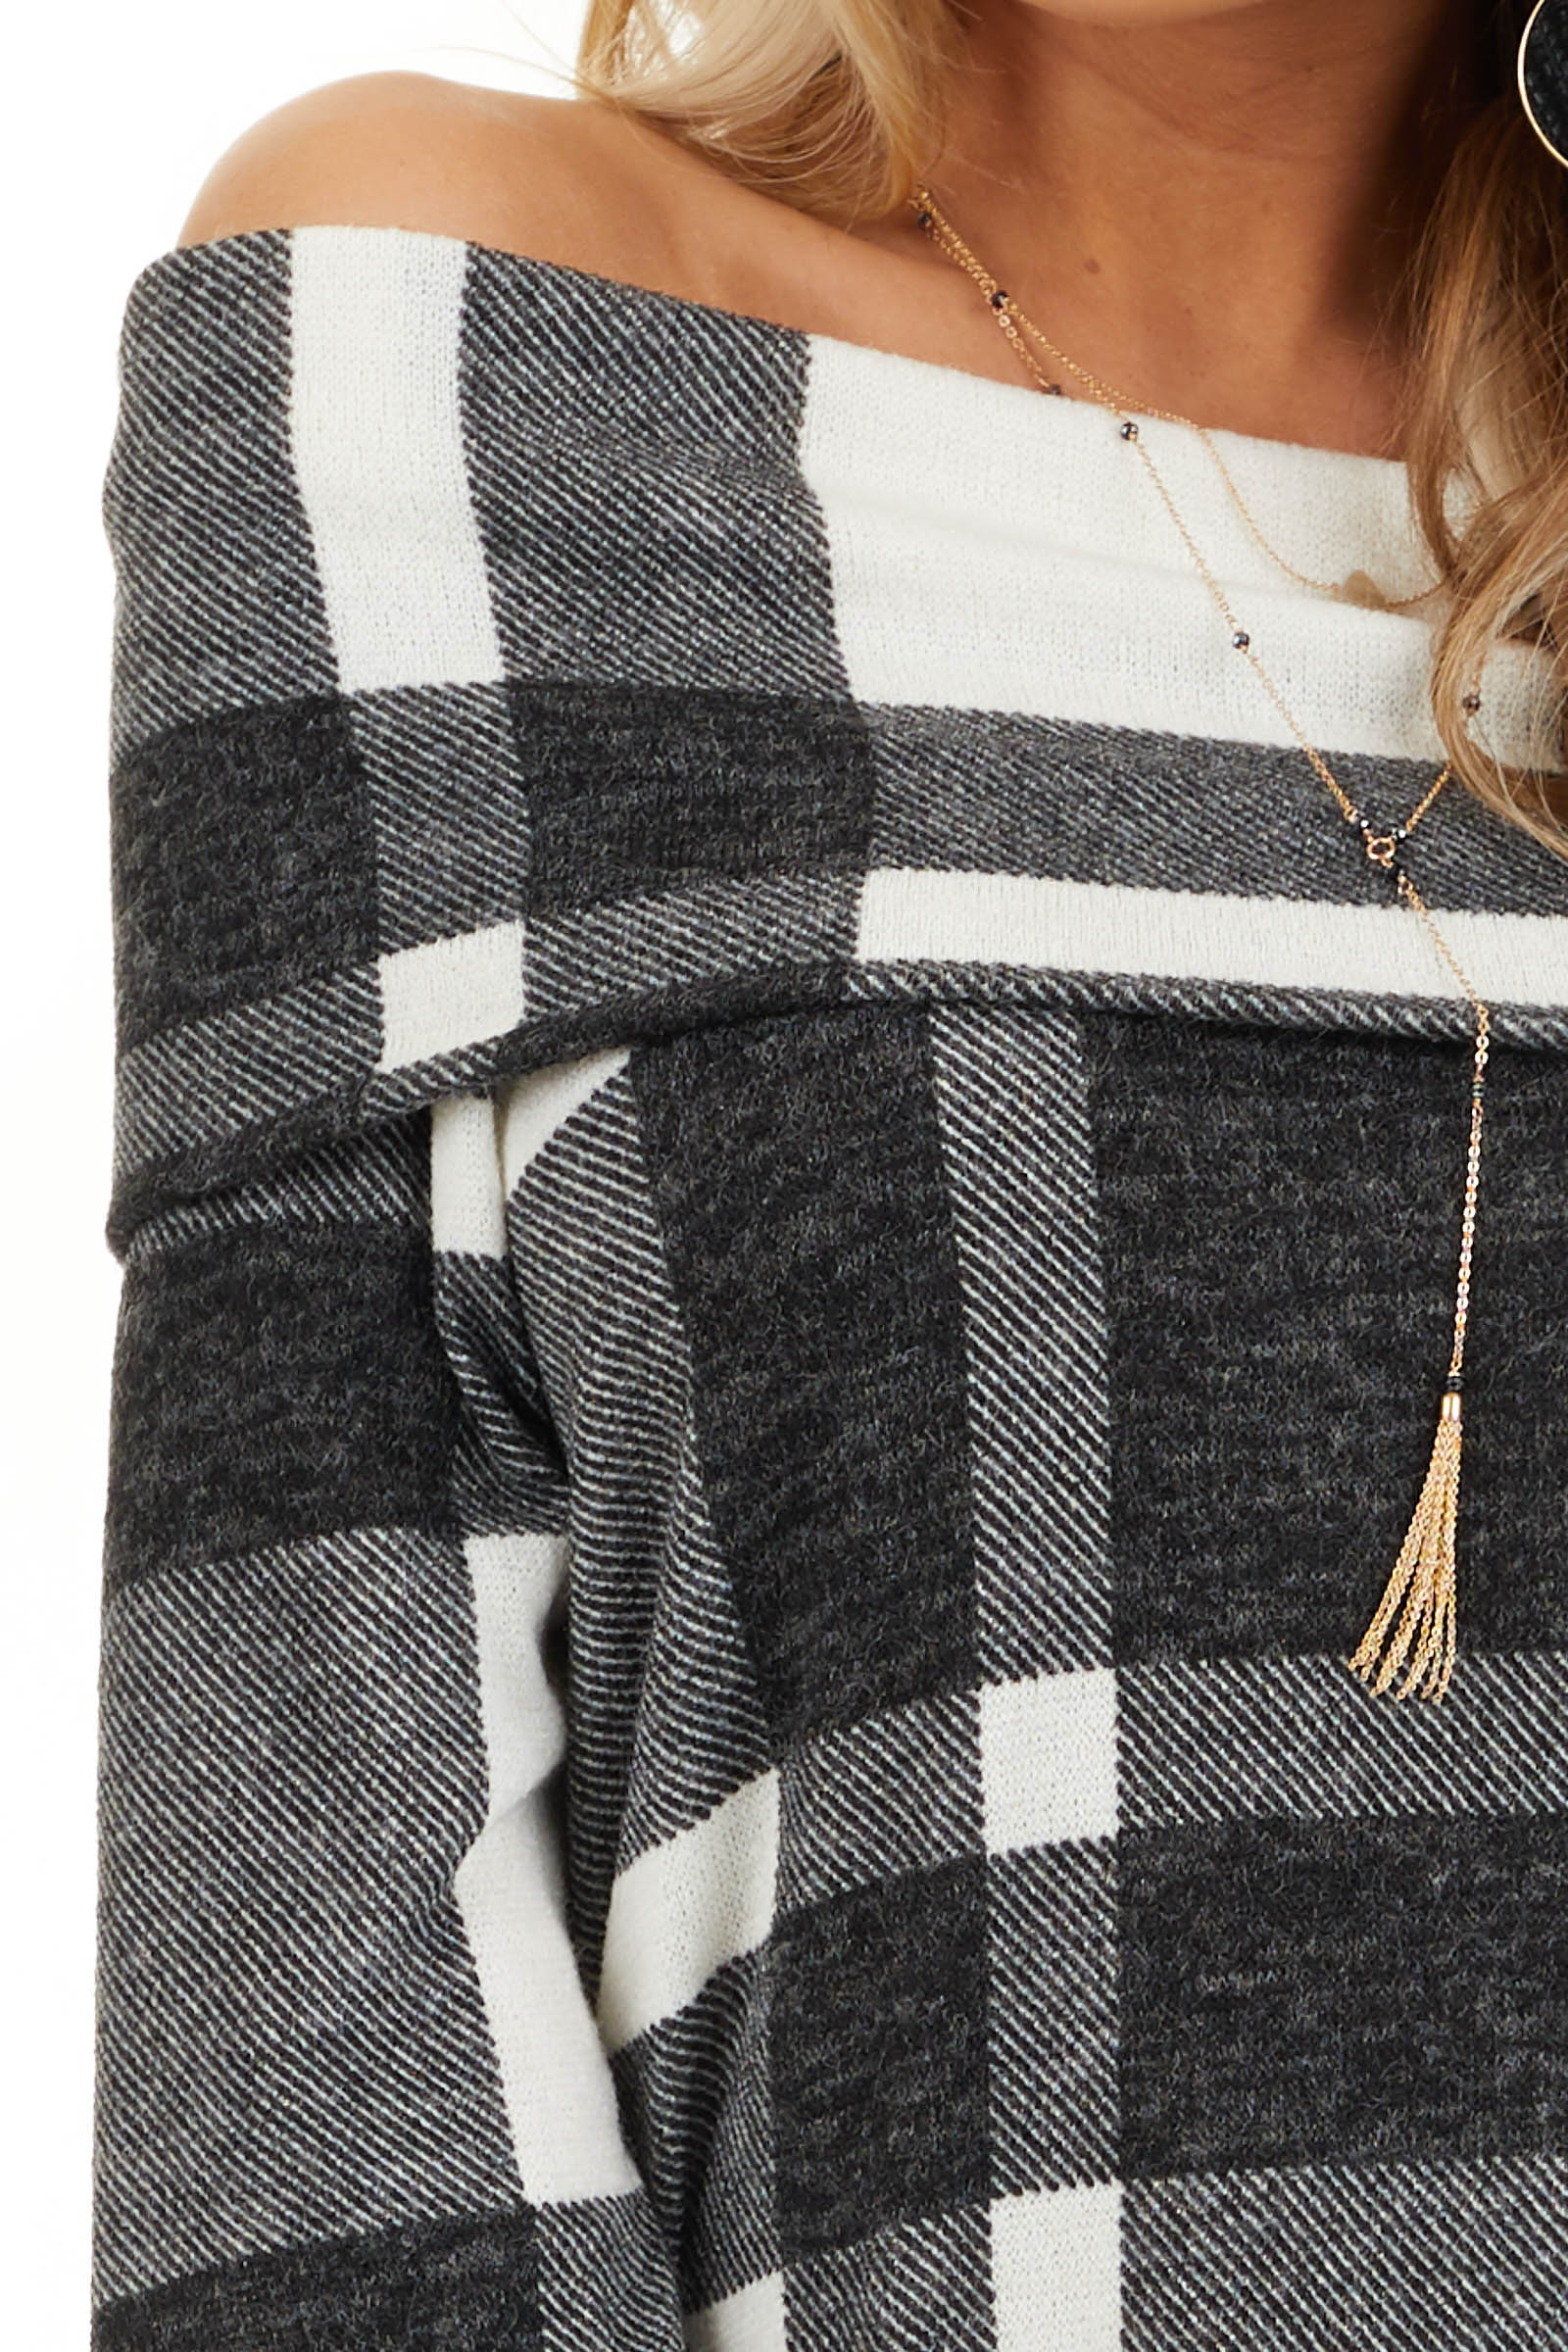 Charcoal Plaid Long Sleeve Off the Shoulder Top detail